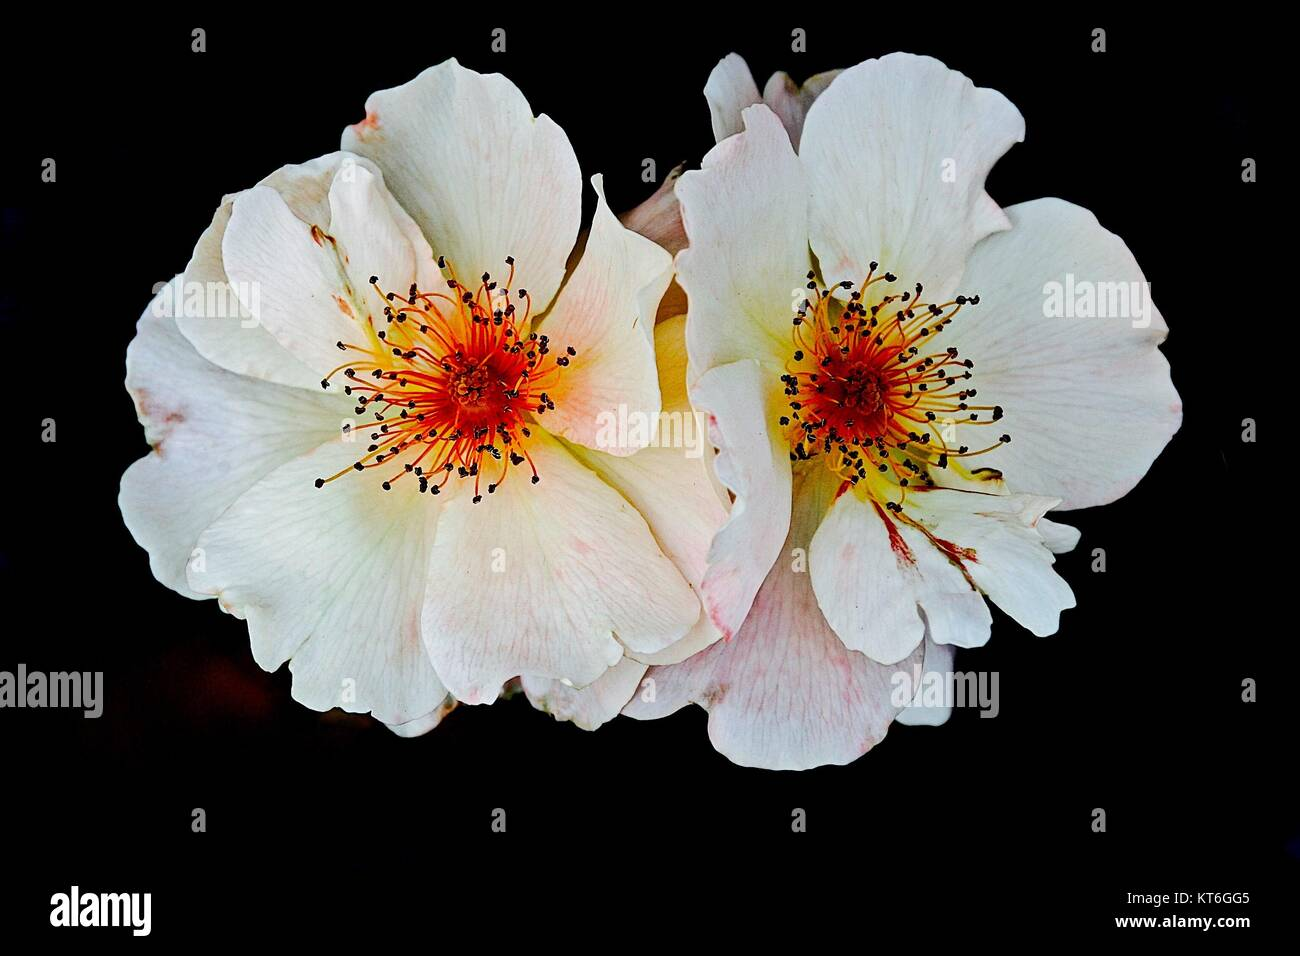 Flower power-natures beauty against a black background - Stock Image